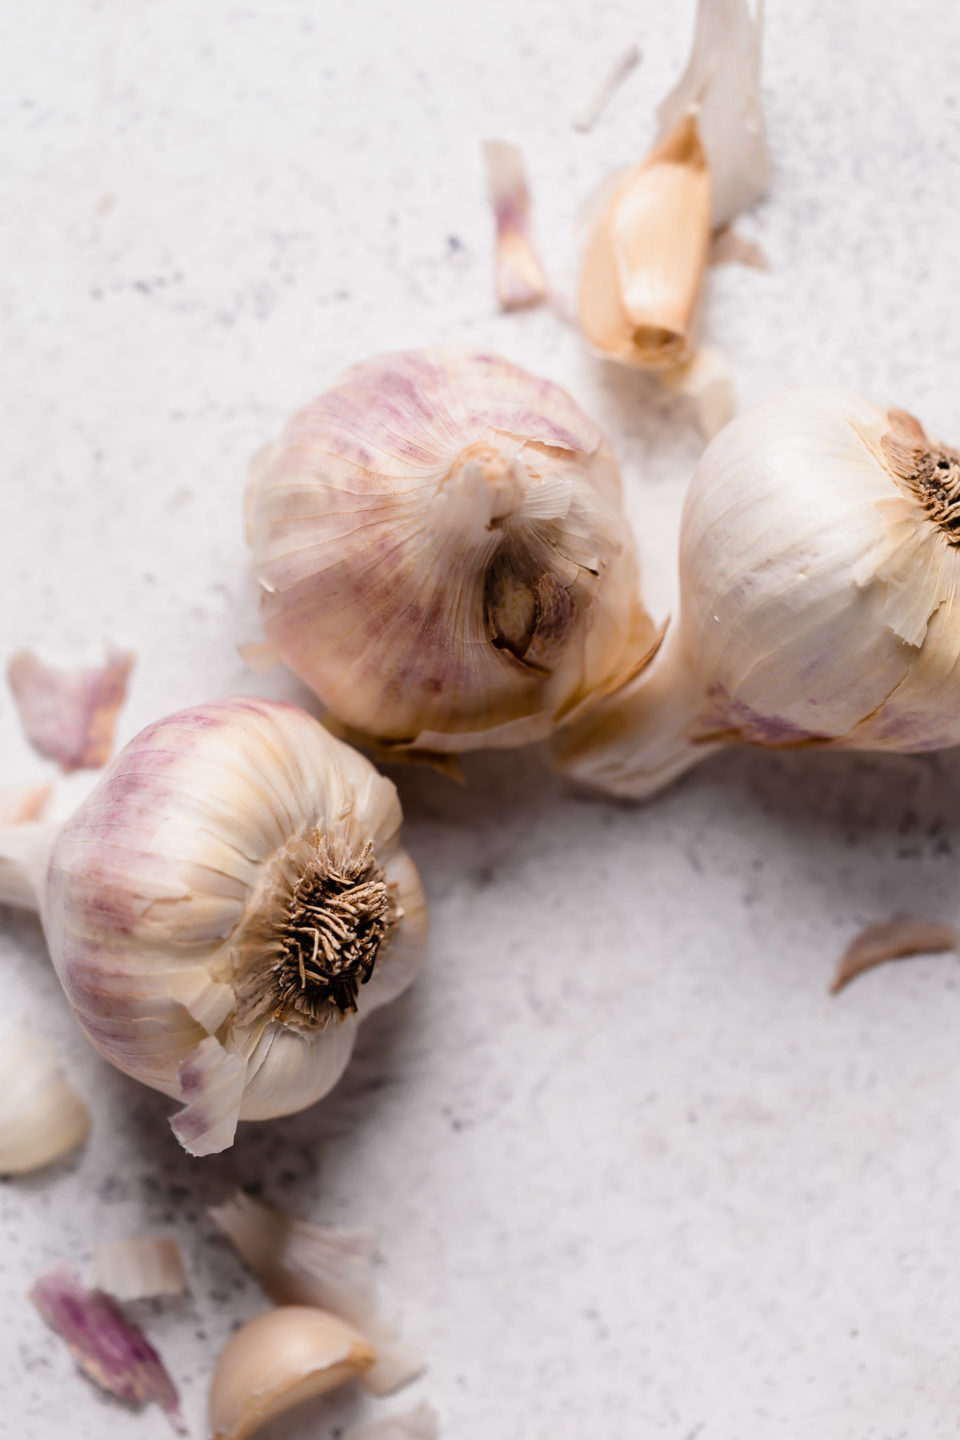 3 heads of garlic on a white surface to make roasted garlic for roasted garlic buttermilk mashed potatoes.